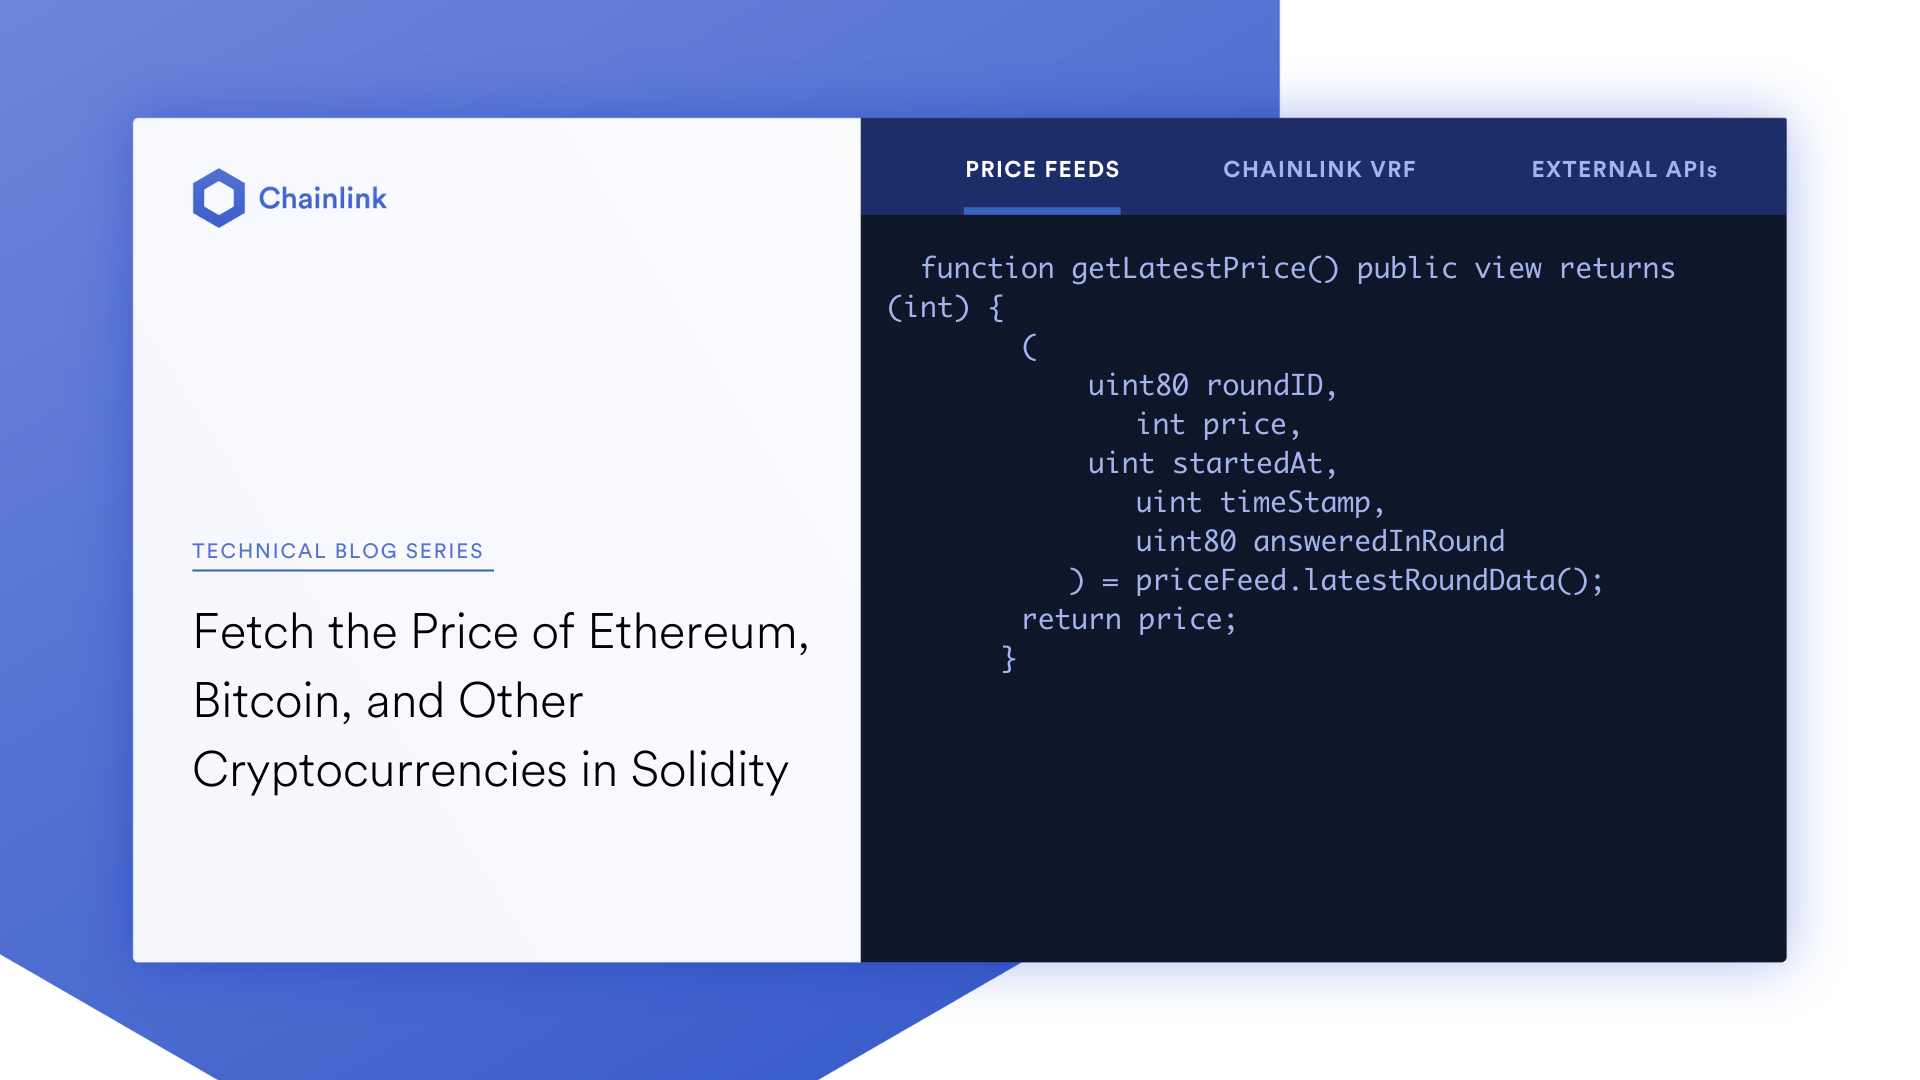 Fetch Price of <bold>Ethereum</bold>, Bitcoin, & Crypto in Solidity